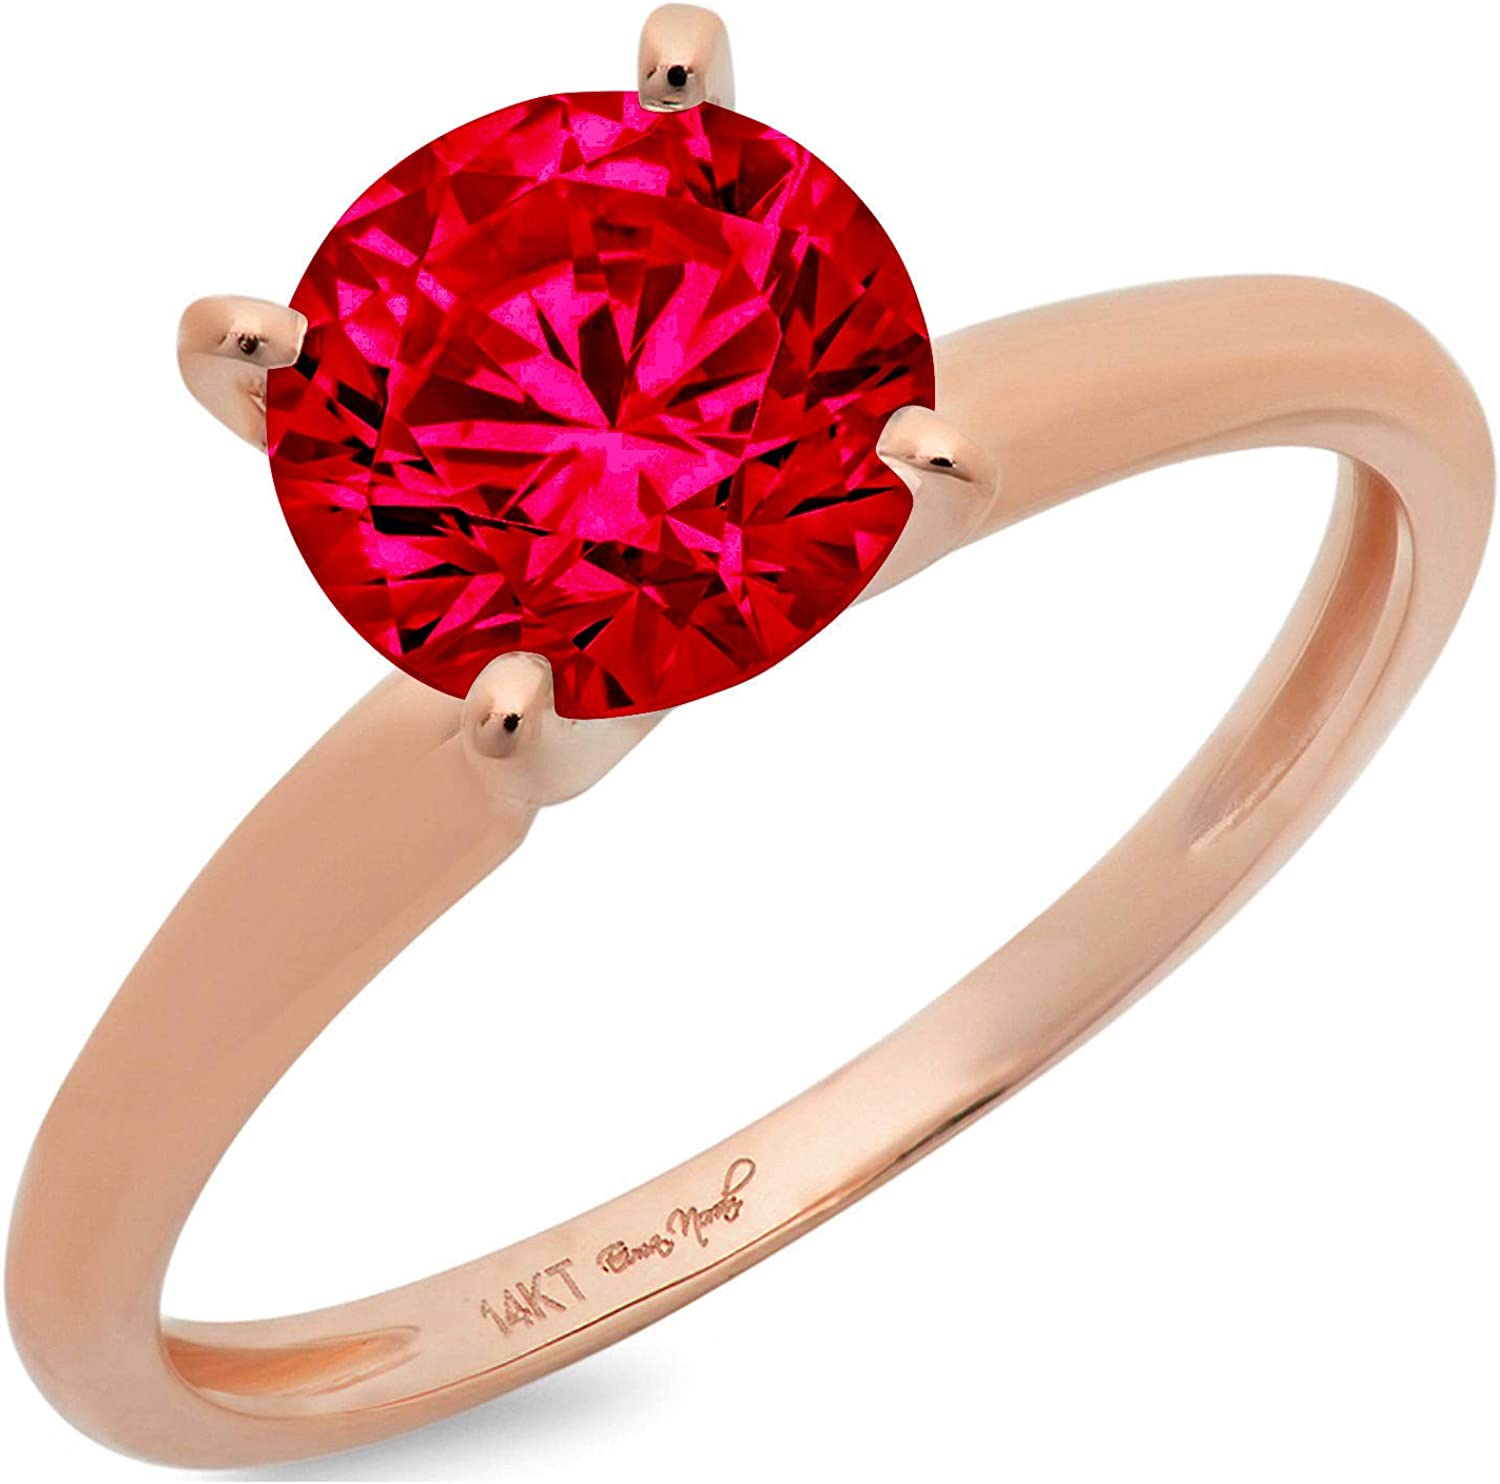 2.45ct Round Cut Solitaire Flawless Ideal CZ Ruby NEW before selling New Orleans Mall Red Simulated